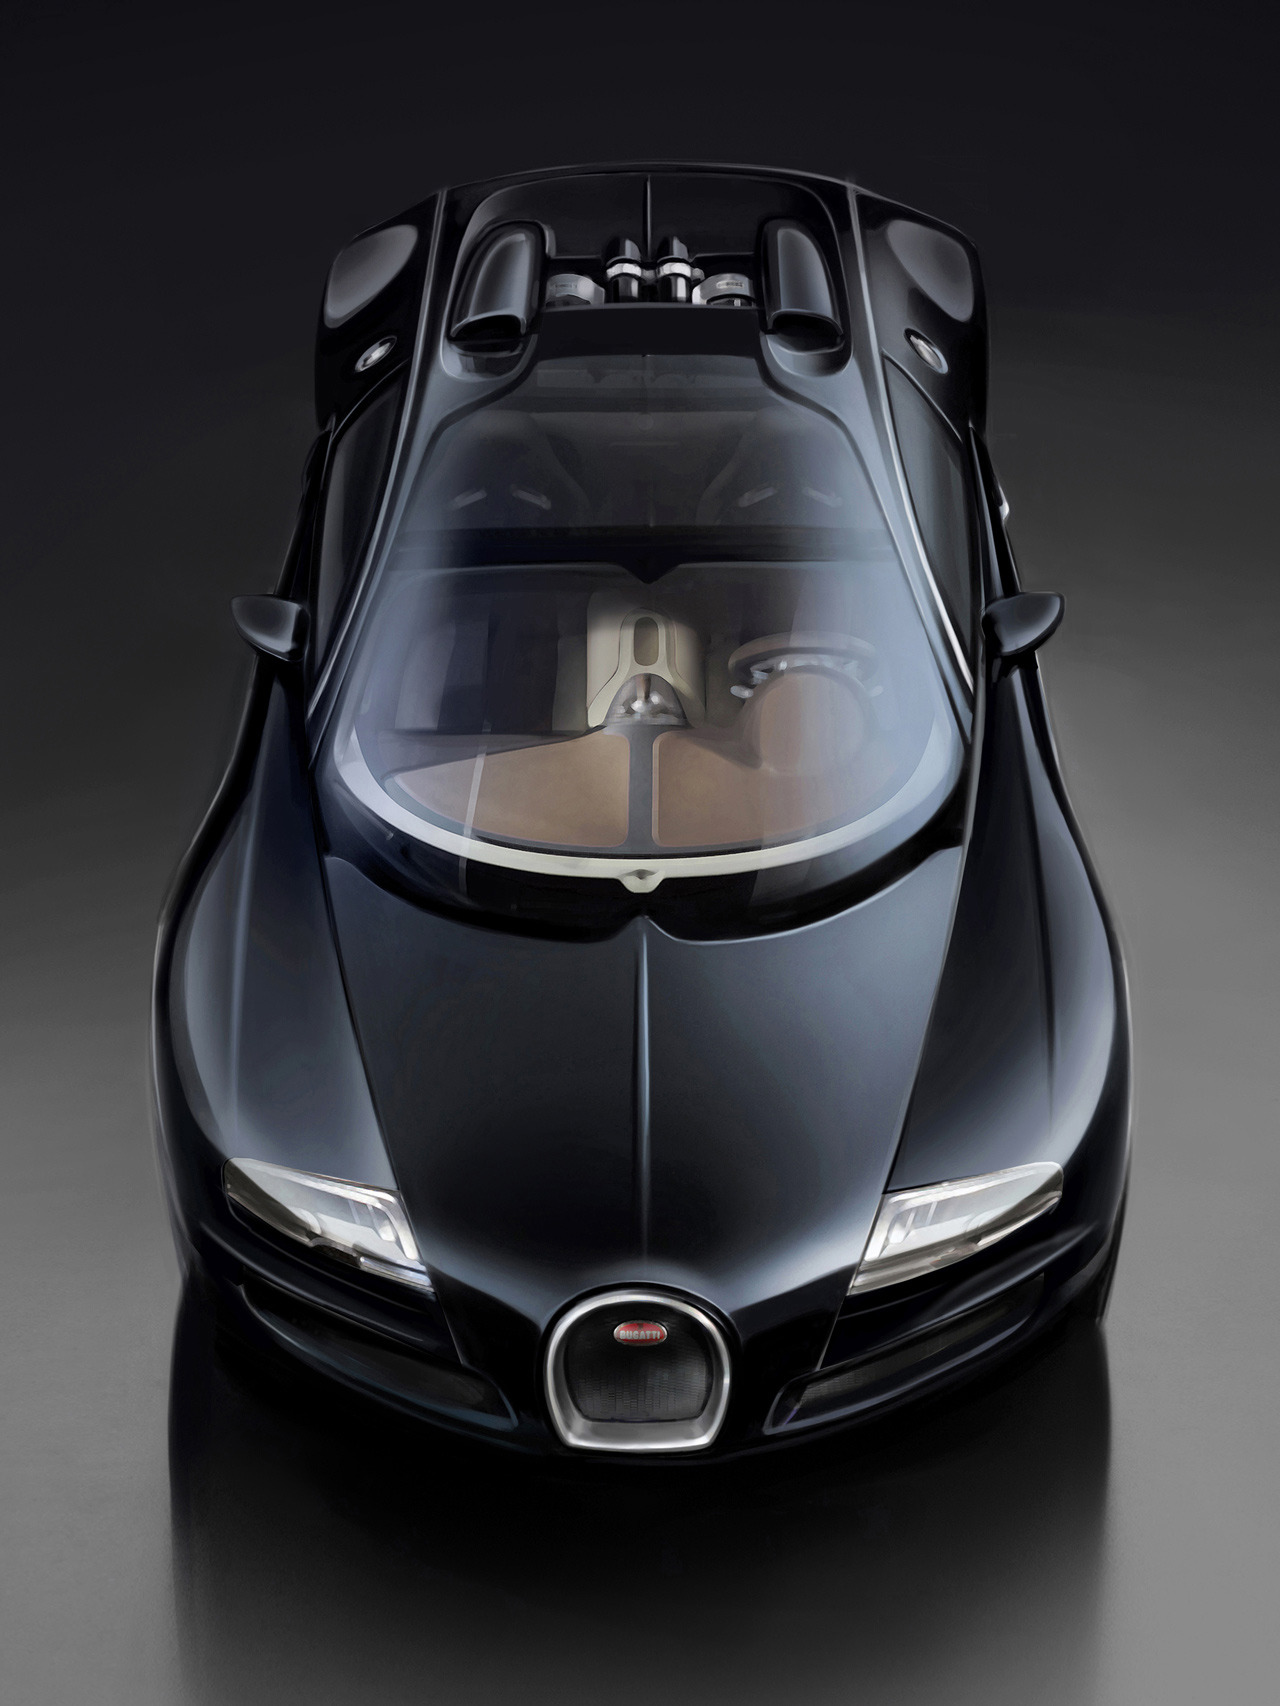 2014 bugatti veyron eb 16 4 grand sport vitesse 39 legend jean bugatti 39. Black Bedroom Furniture Sets. Home Design Ideas